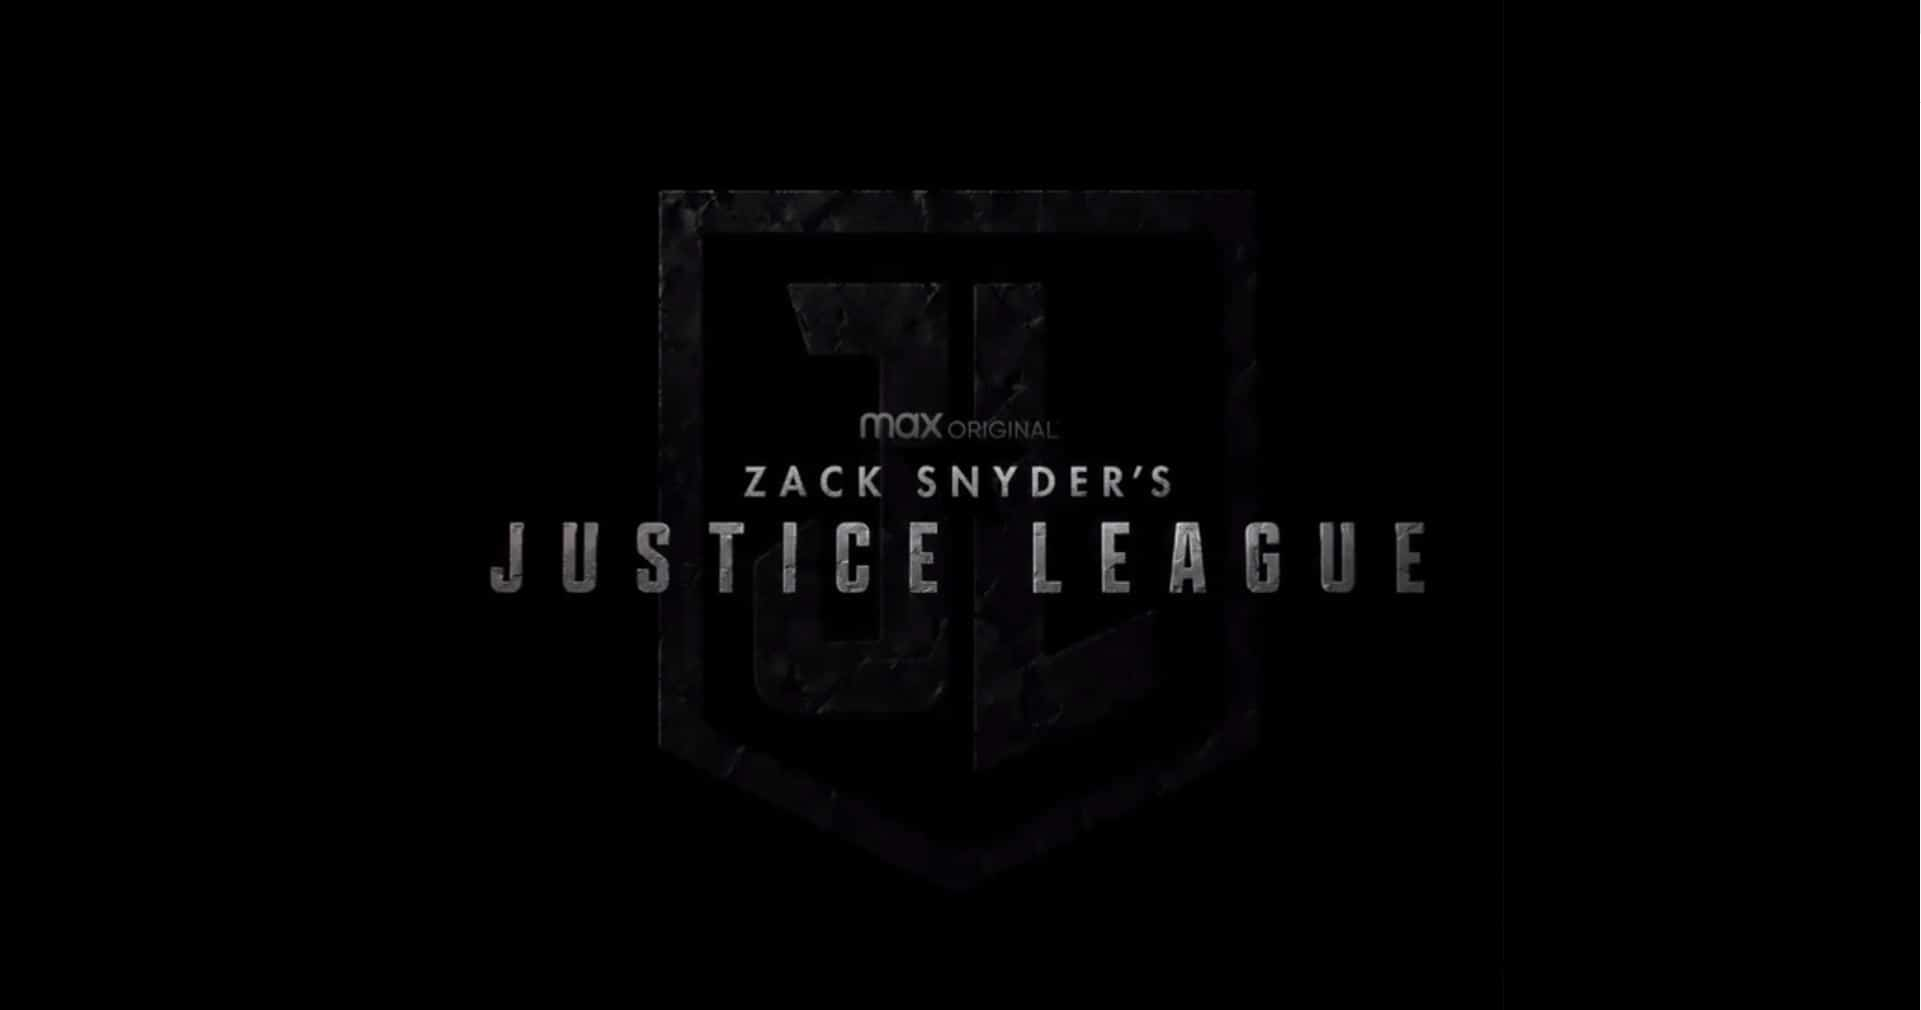 New Justice League Trailer Gives Us First Look At Darkseid